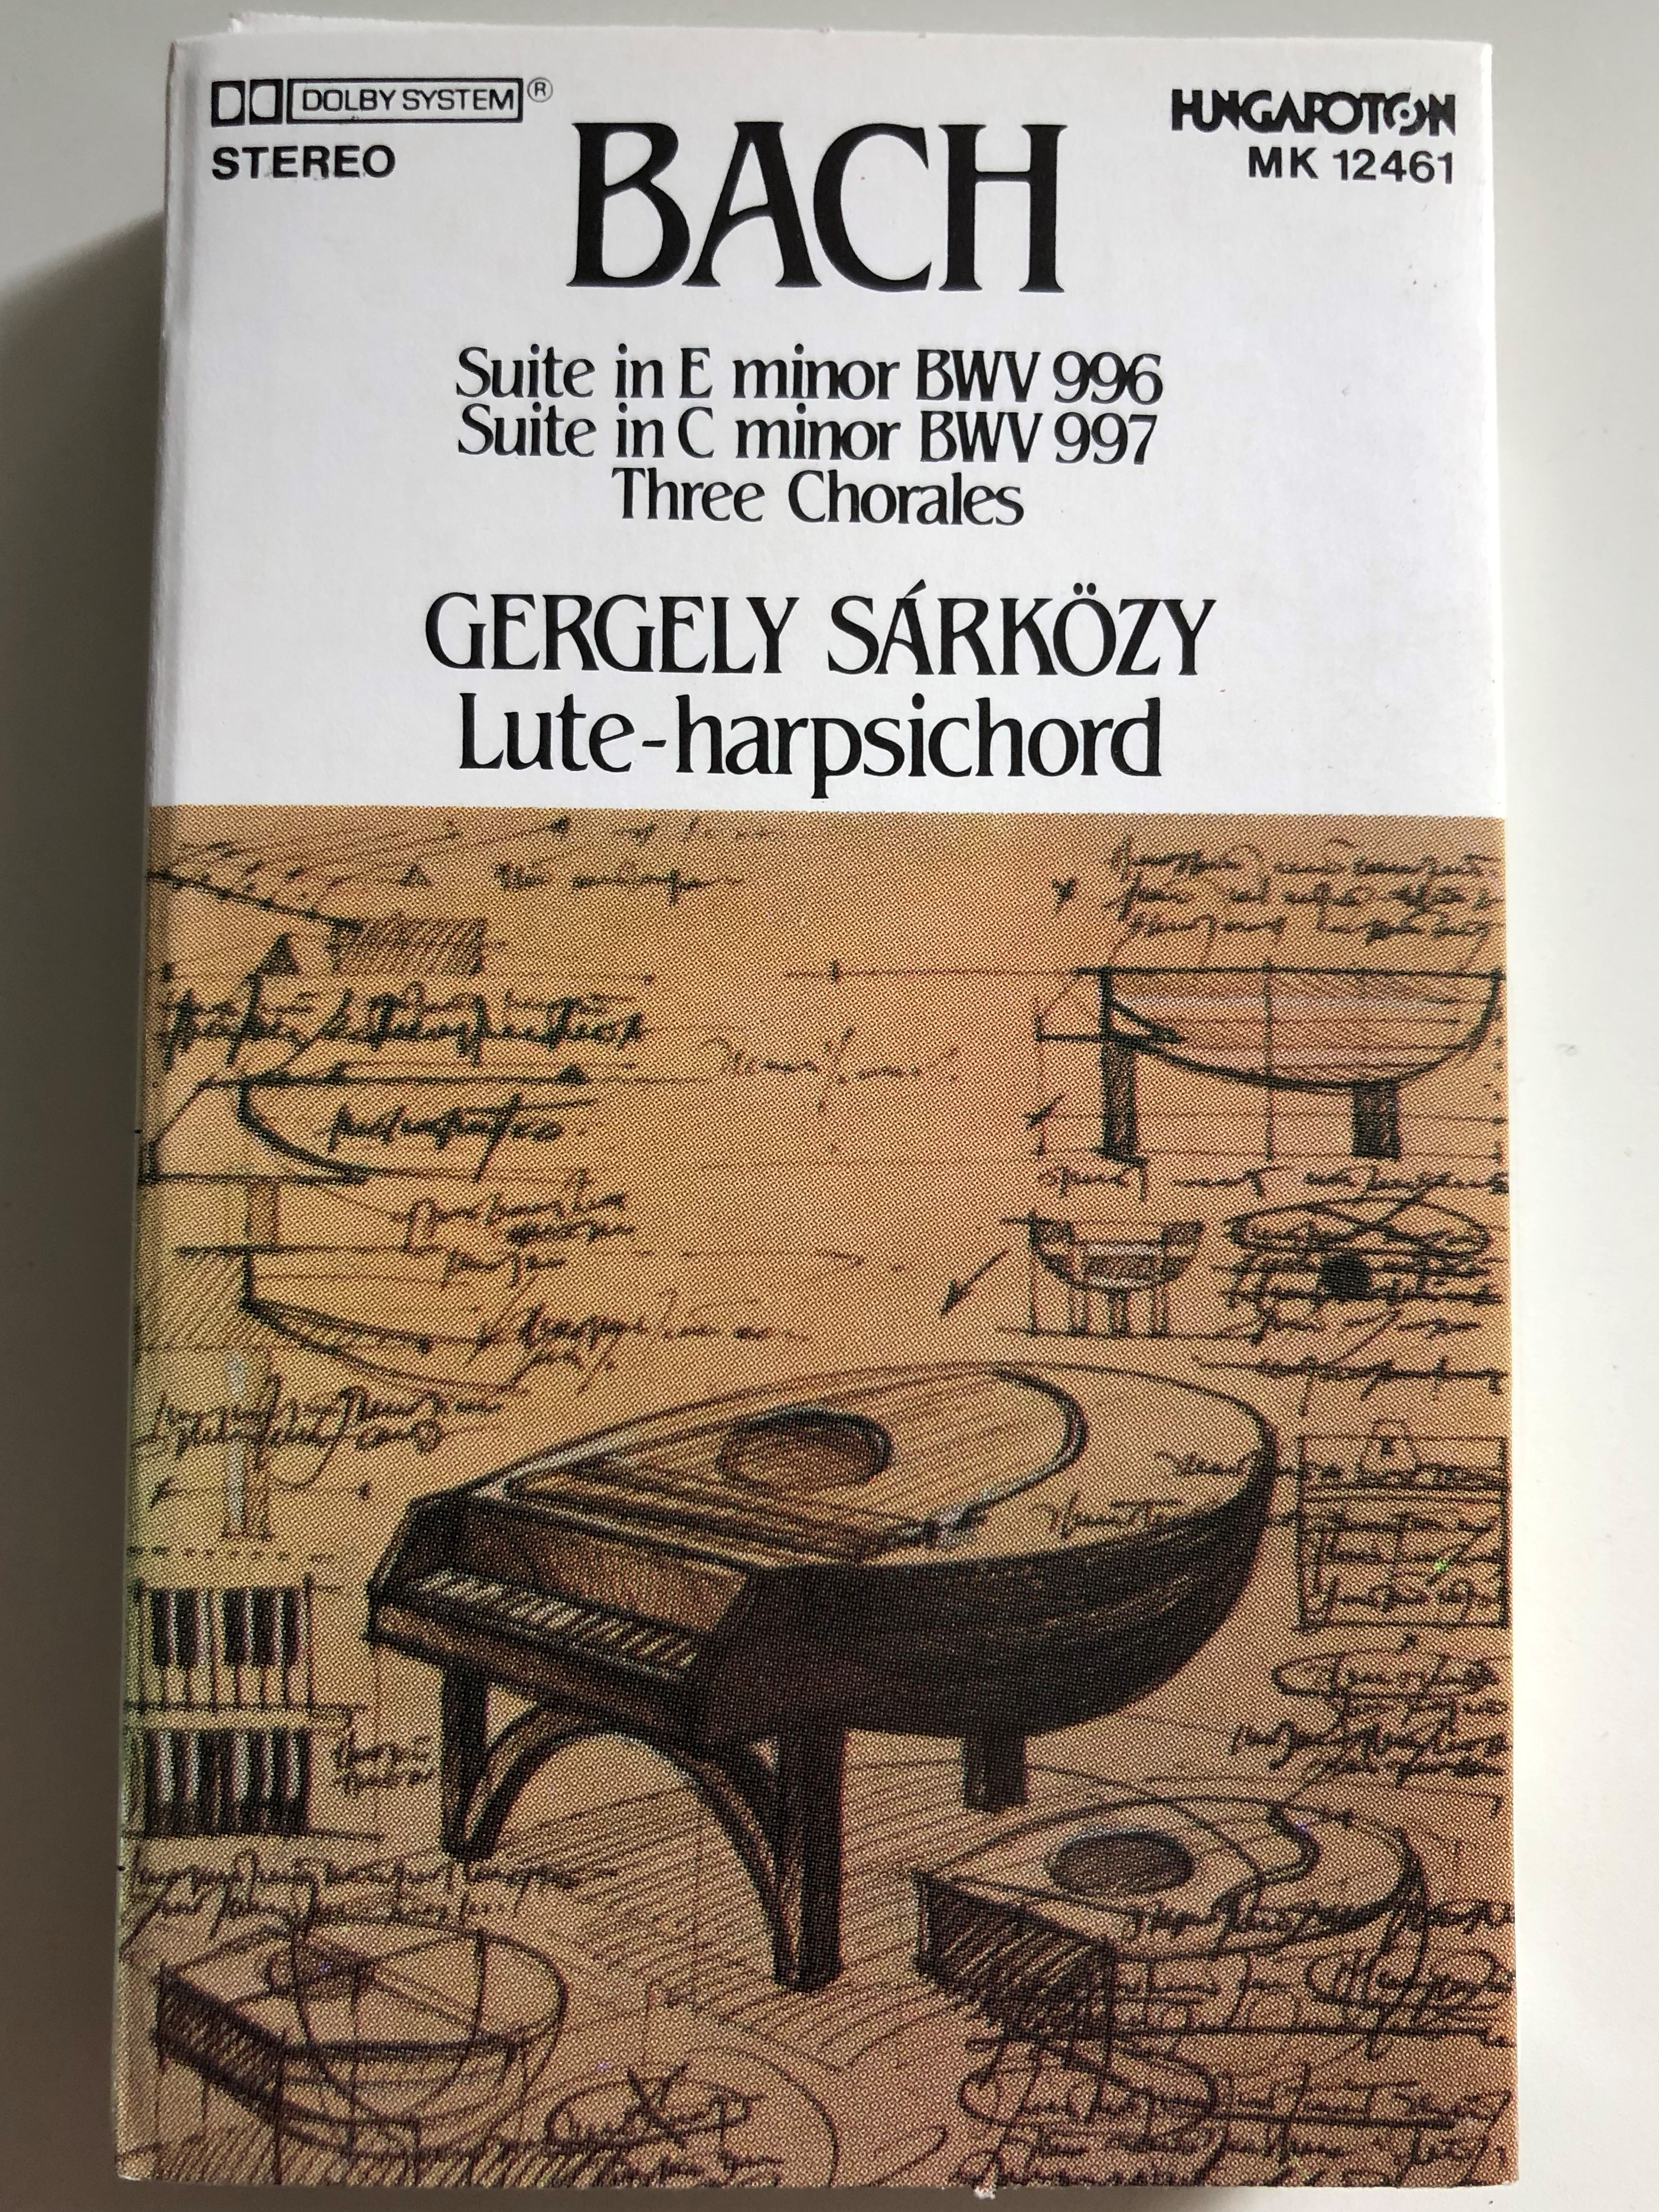 bach-suite-in-e-minor-bwv-996-suite-in-c-minor-bwv-997-three-chorales-gergely-s-rk-zy-lute-harpsichord-hungaroton-cassette-stereo-mk-12461-1-.jpg